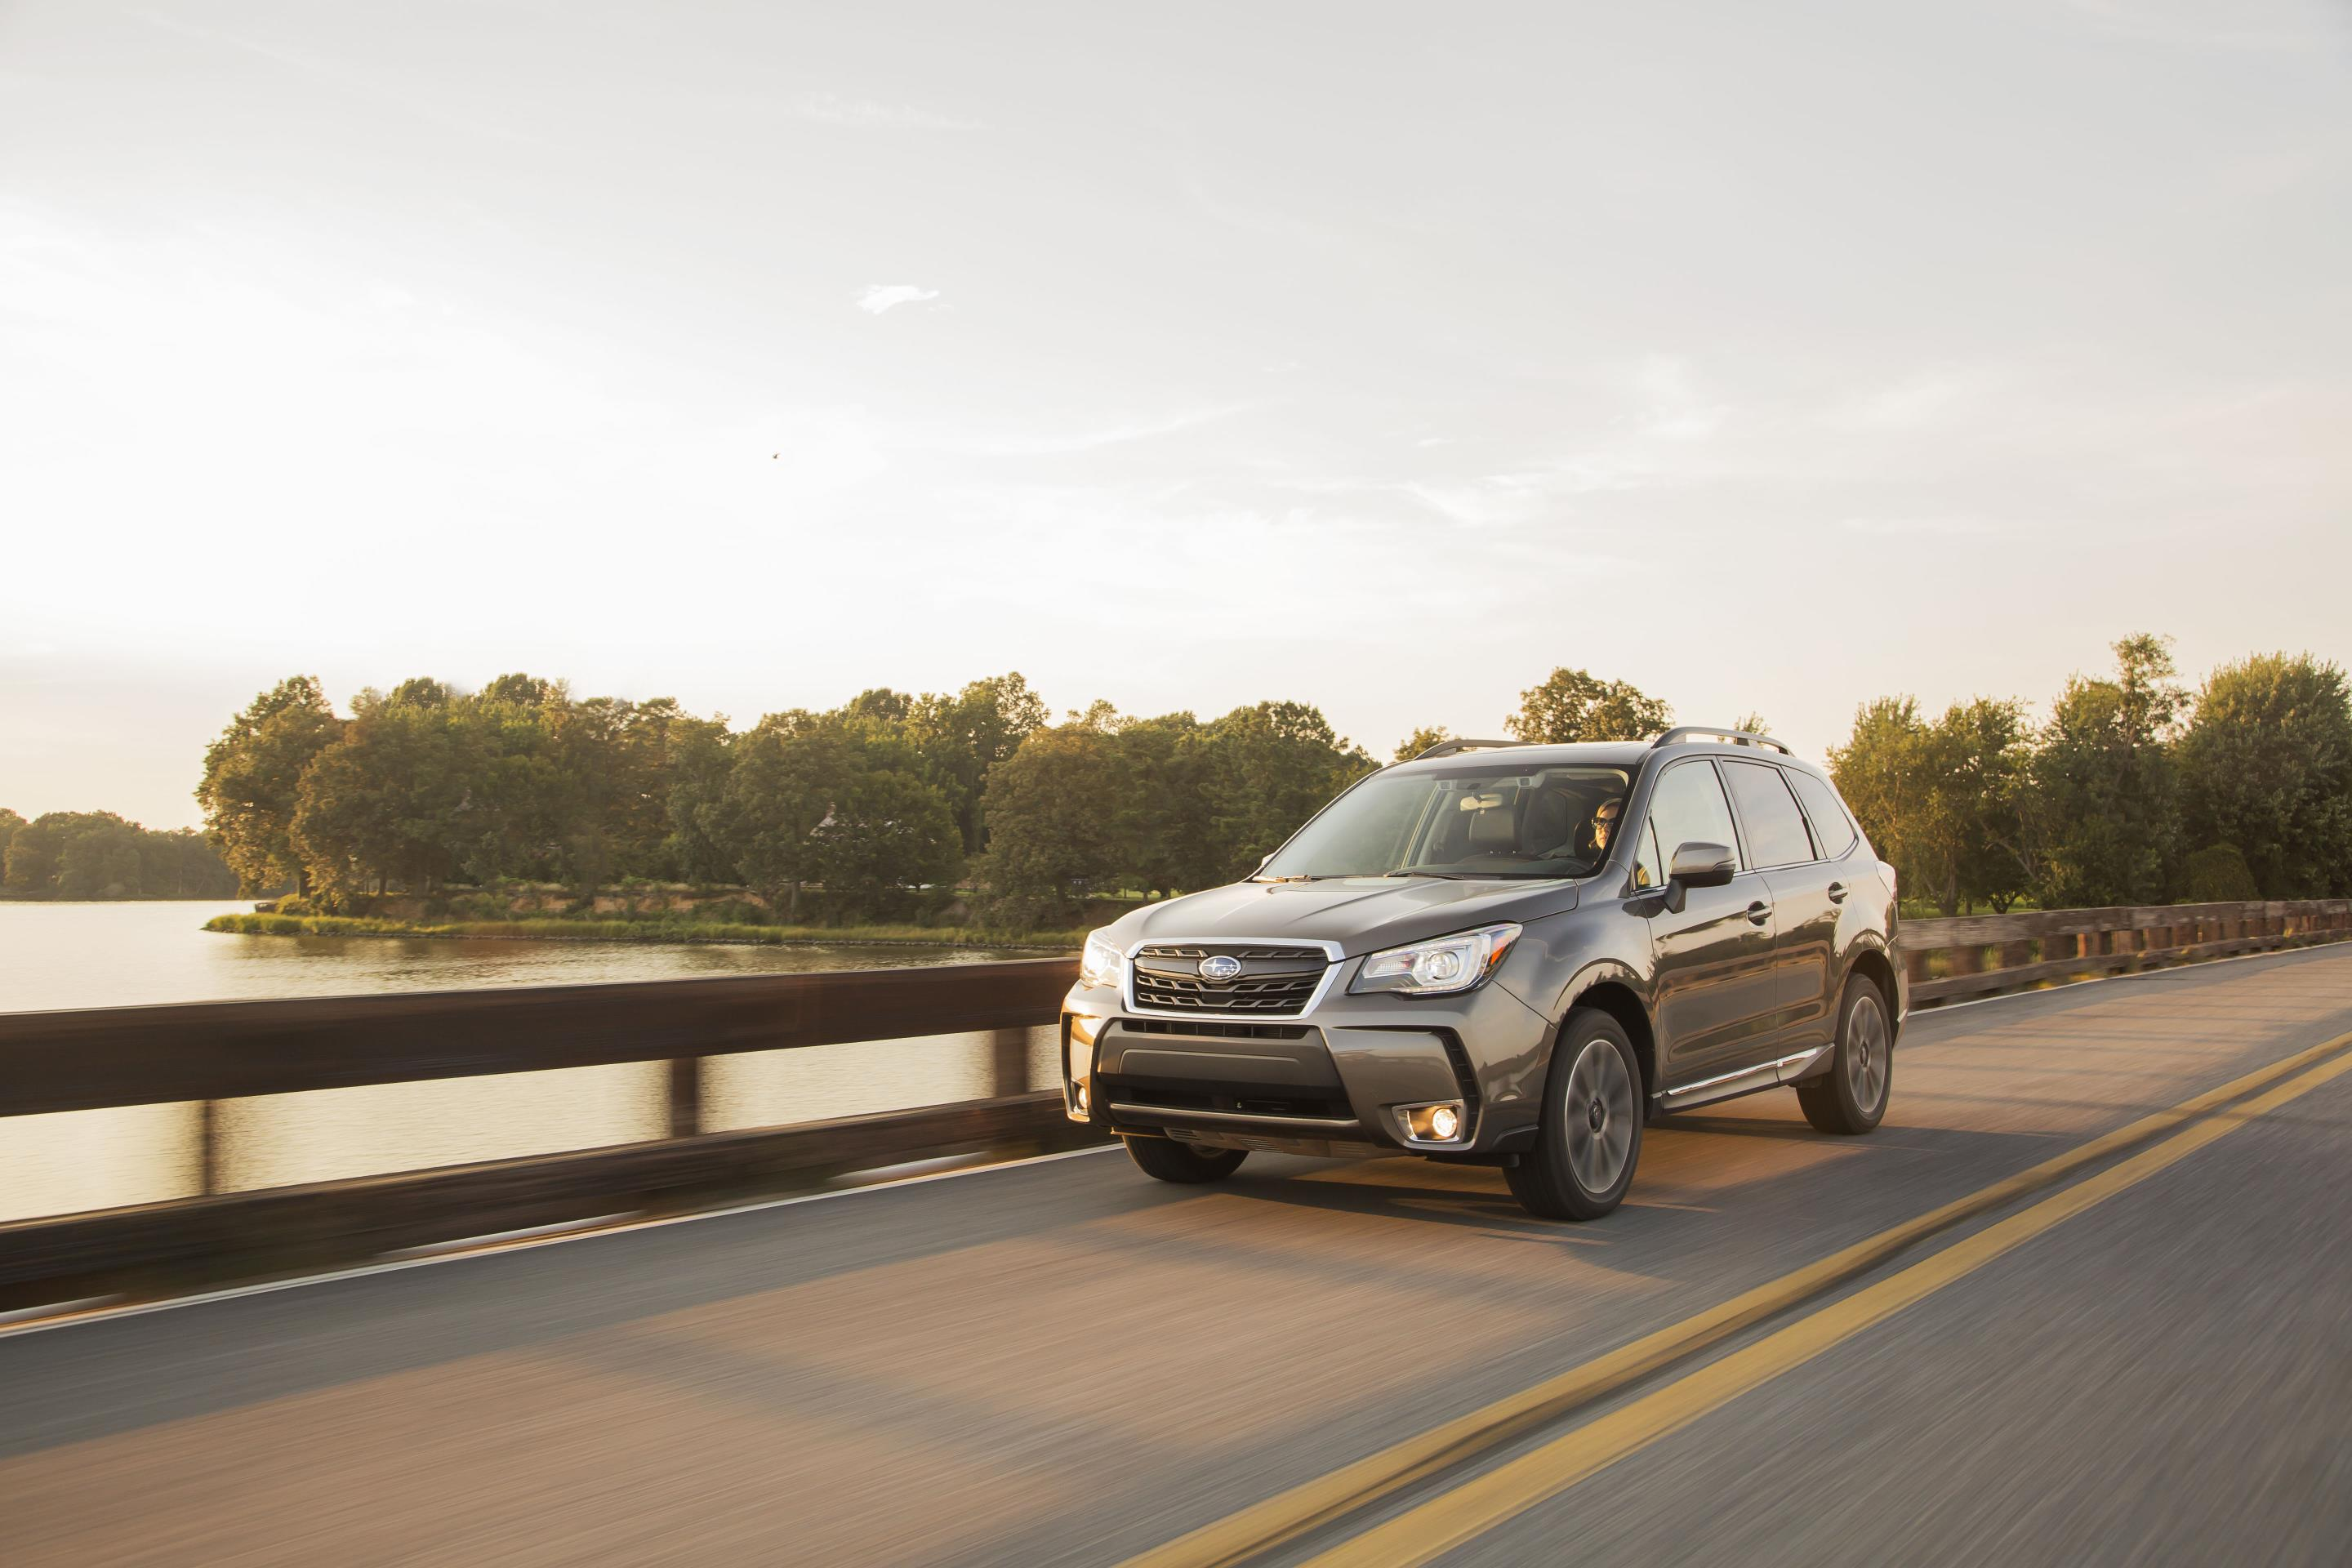 Subaru Forester, one of Subaru's top selling vehicles in calendar year 2017